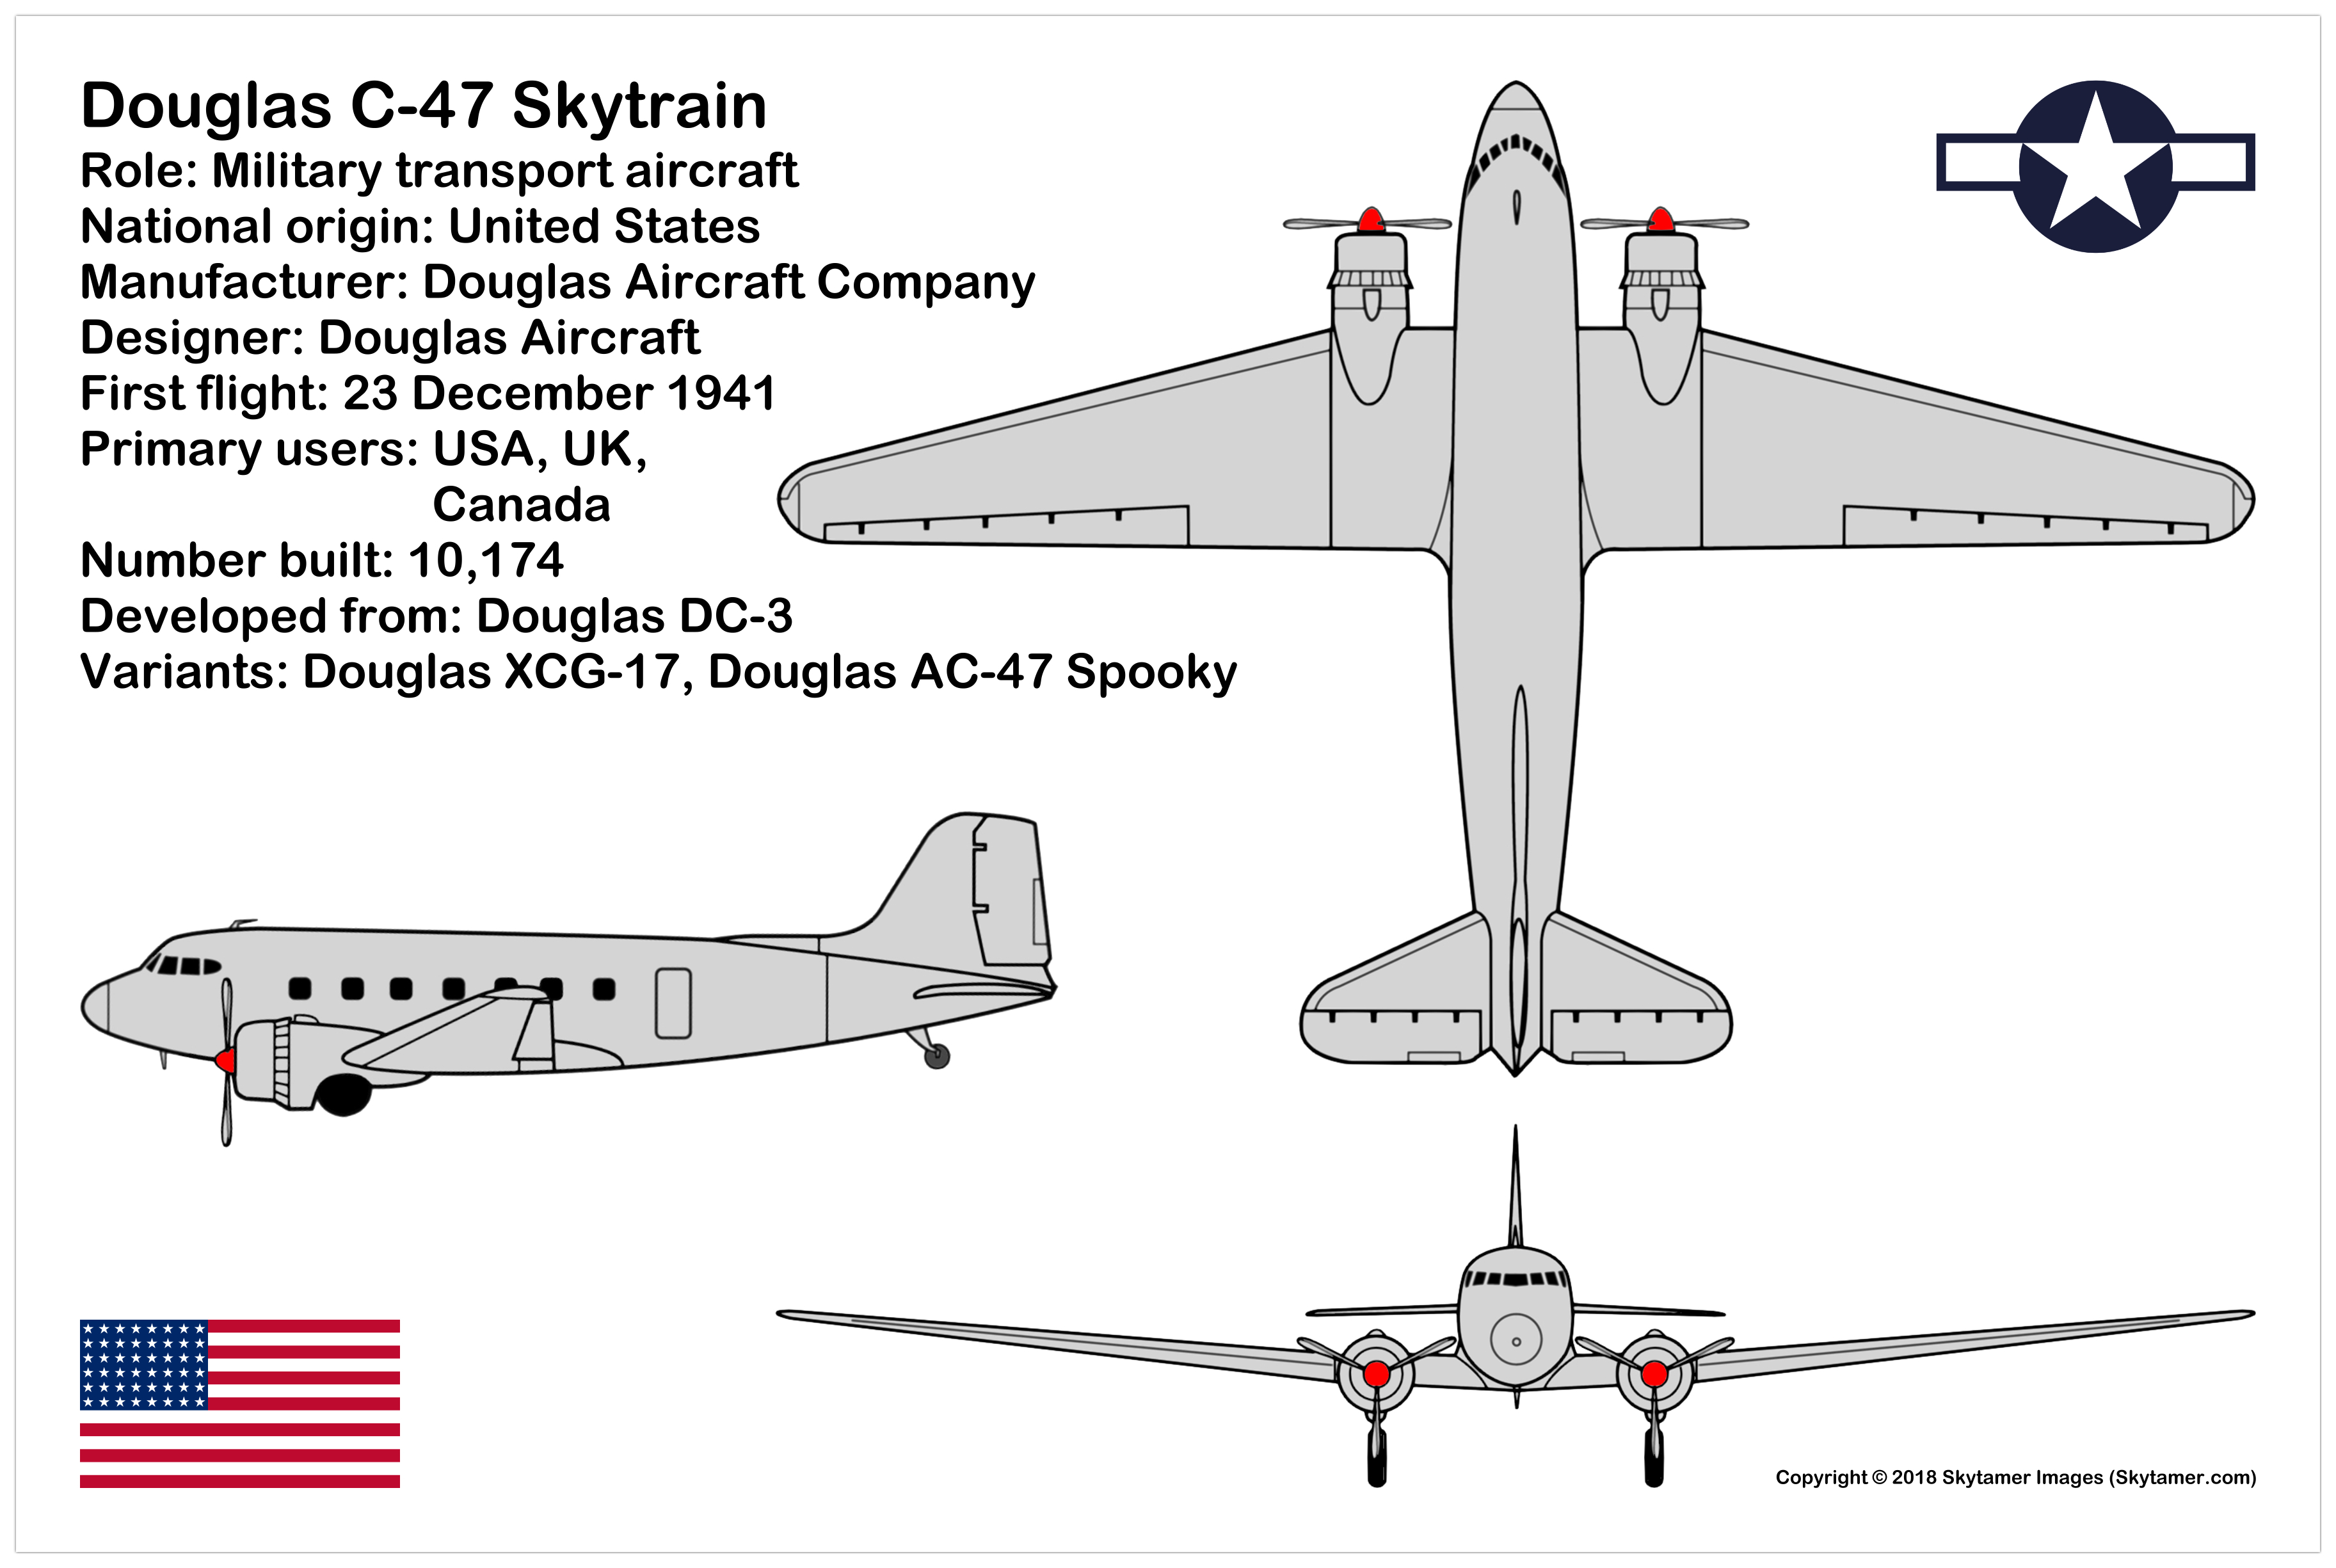 Douglas C-47A Skytrain, Two-engine Four-crew Low-wing Military